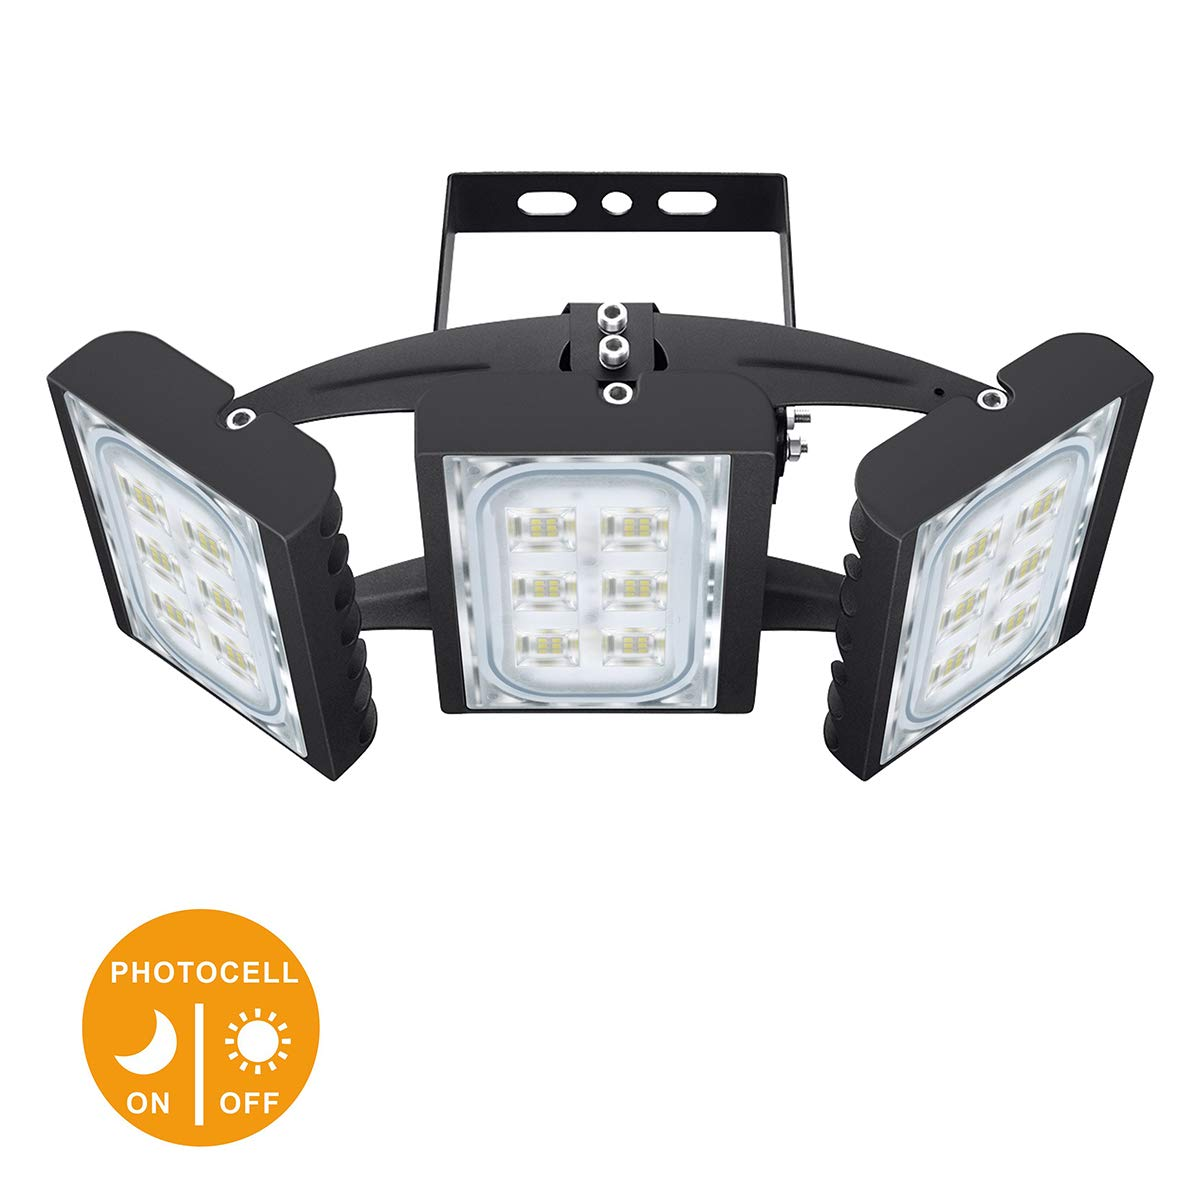 LED Flood Light, STASUN 90W 8100lm Dusk to Dawn Security Lights with 330°Wide Lighting Area(Photocell Included), 6000K Daylight, OSRAM LED Chips, Waterproof, Great for Yard, Street, Parking Lot